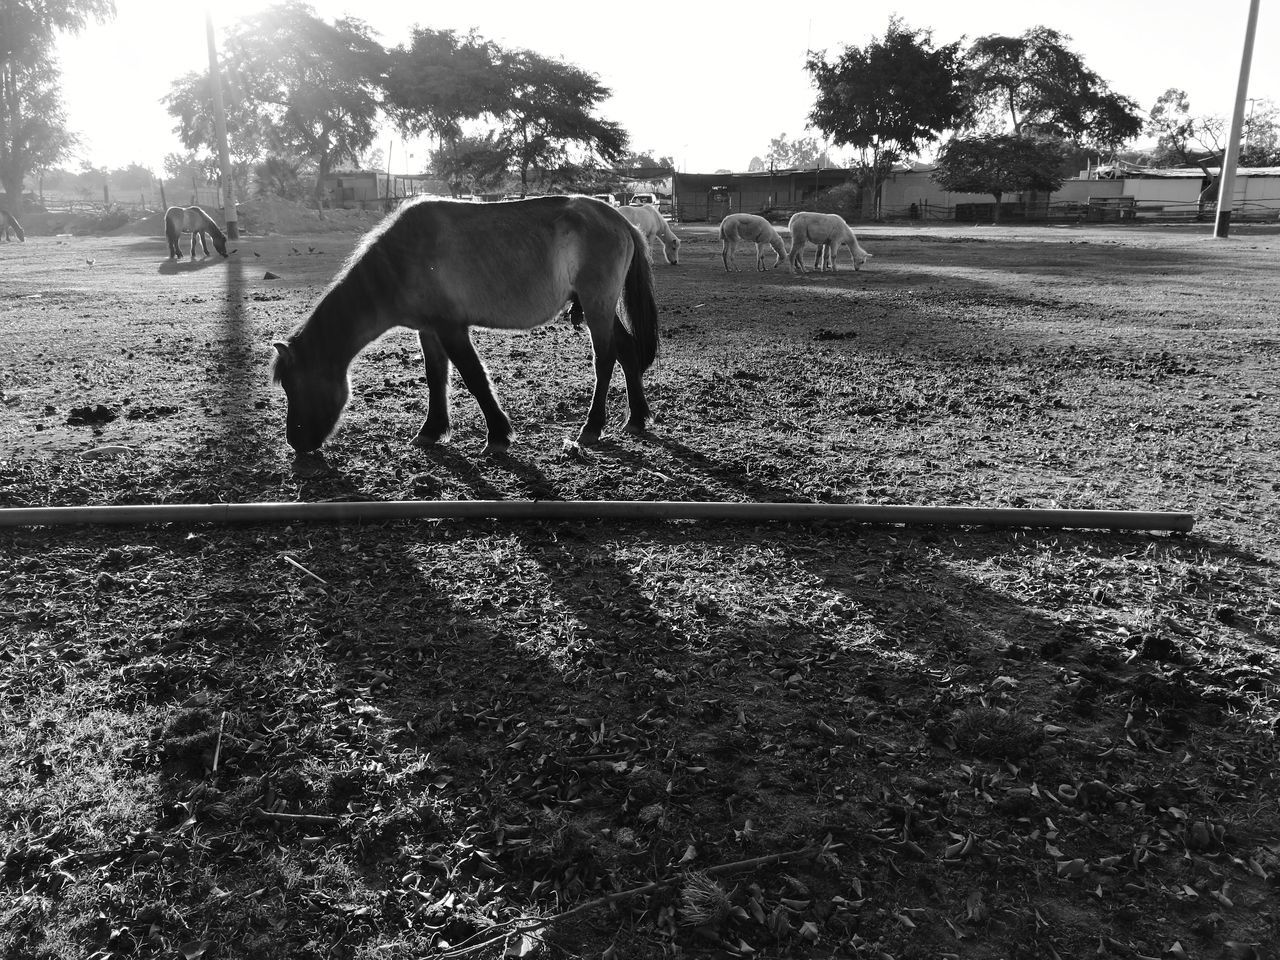 Little horse Domestic Animals Animal Themes Mammal One Animal Tree Day Livestock Outdoors Nature Agriculture Sky Rural Scene No People Fresh 3 Leica Huawei P9 Eye4photography  EyeEm Best Shots Horse Horse Photography  Nature Animal Wildlife Animal Biancoenero Blancoynegro Blackandwhite